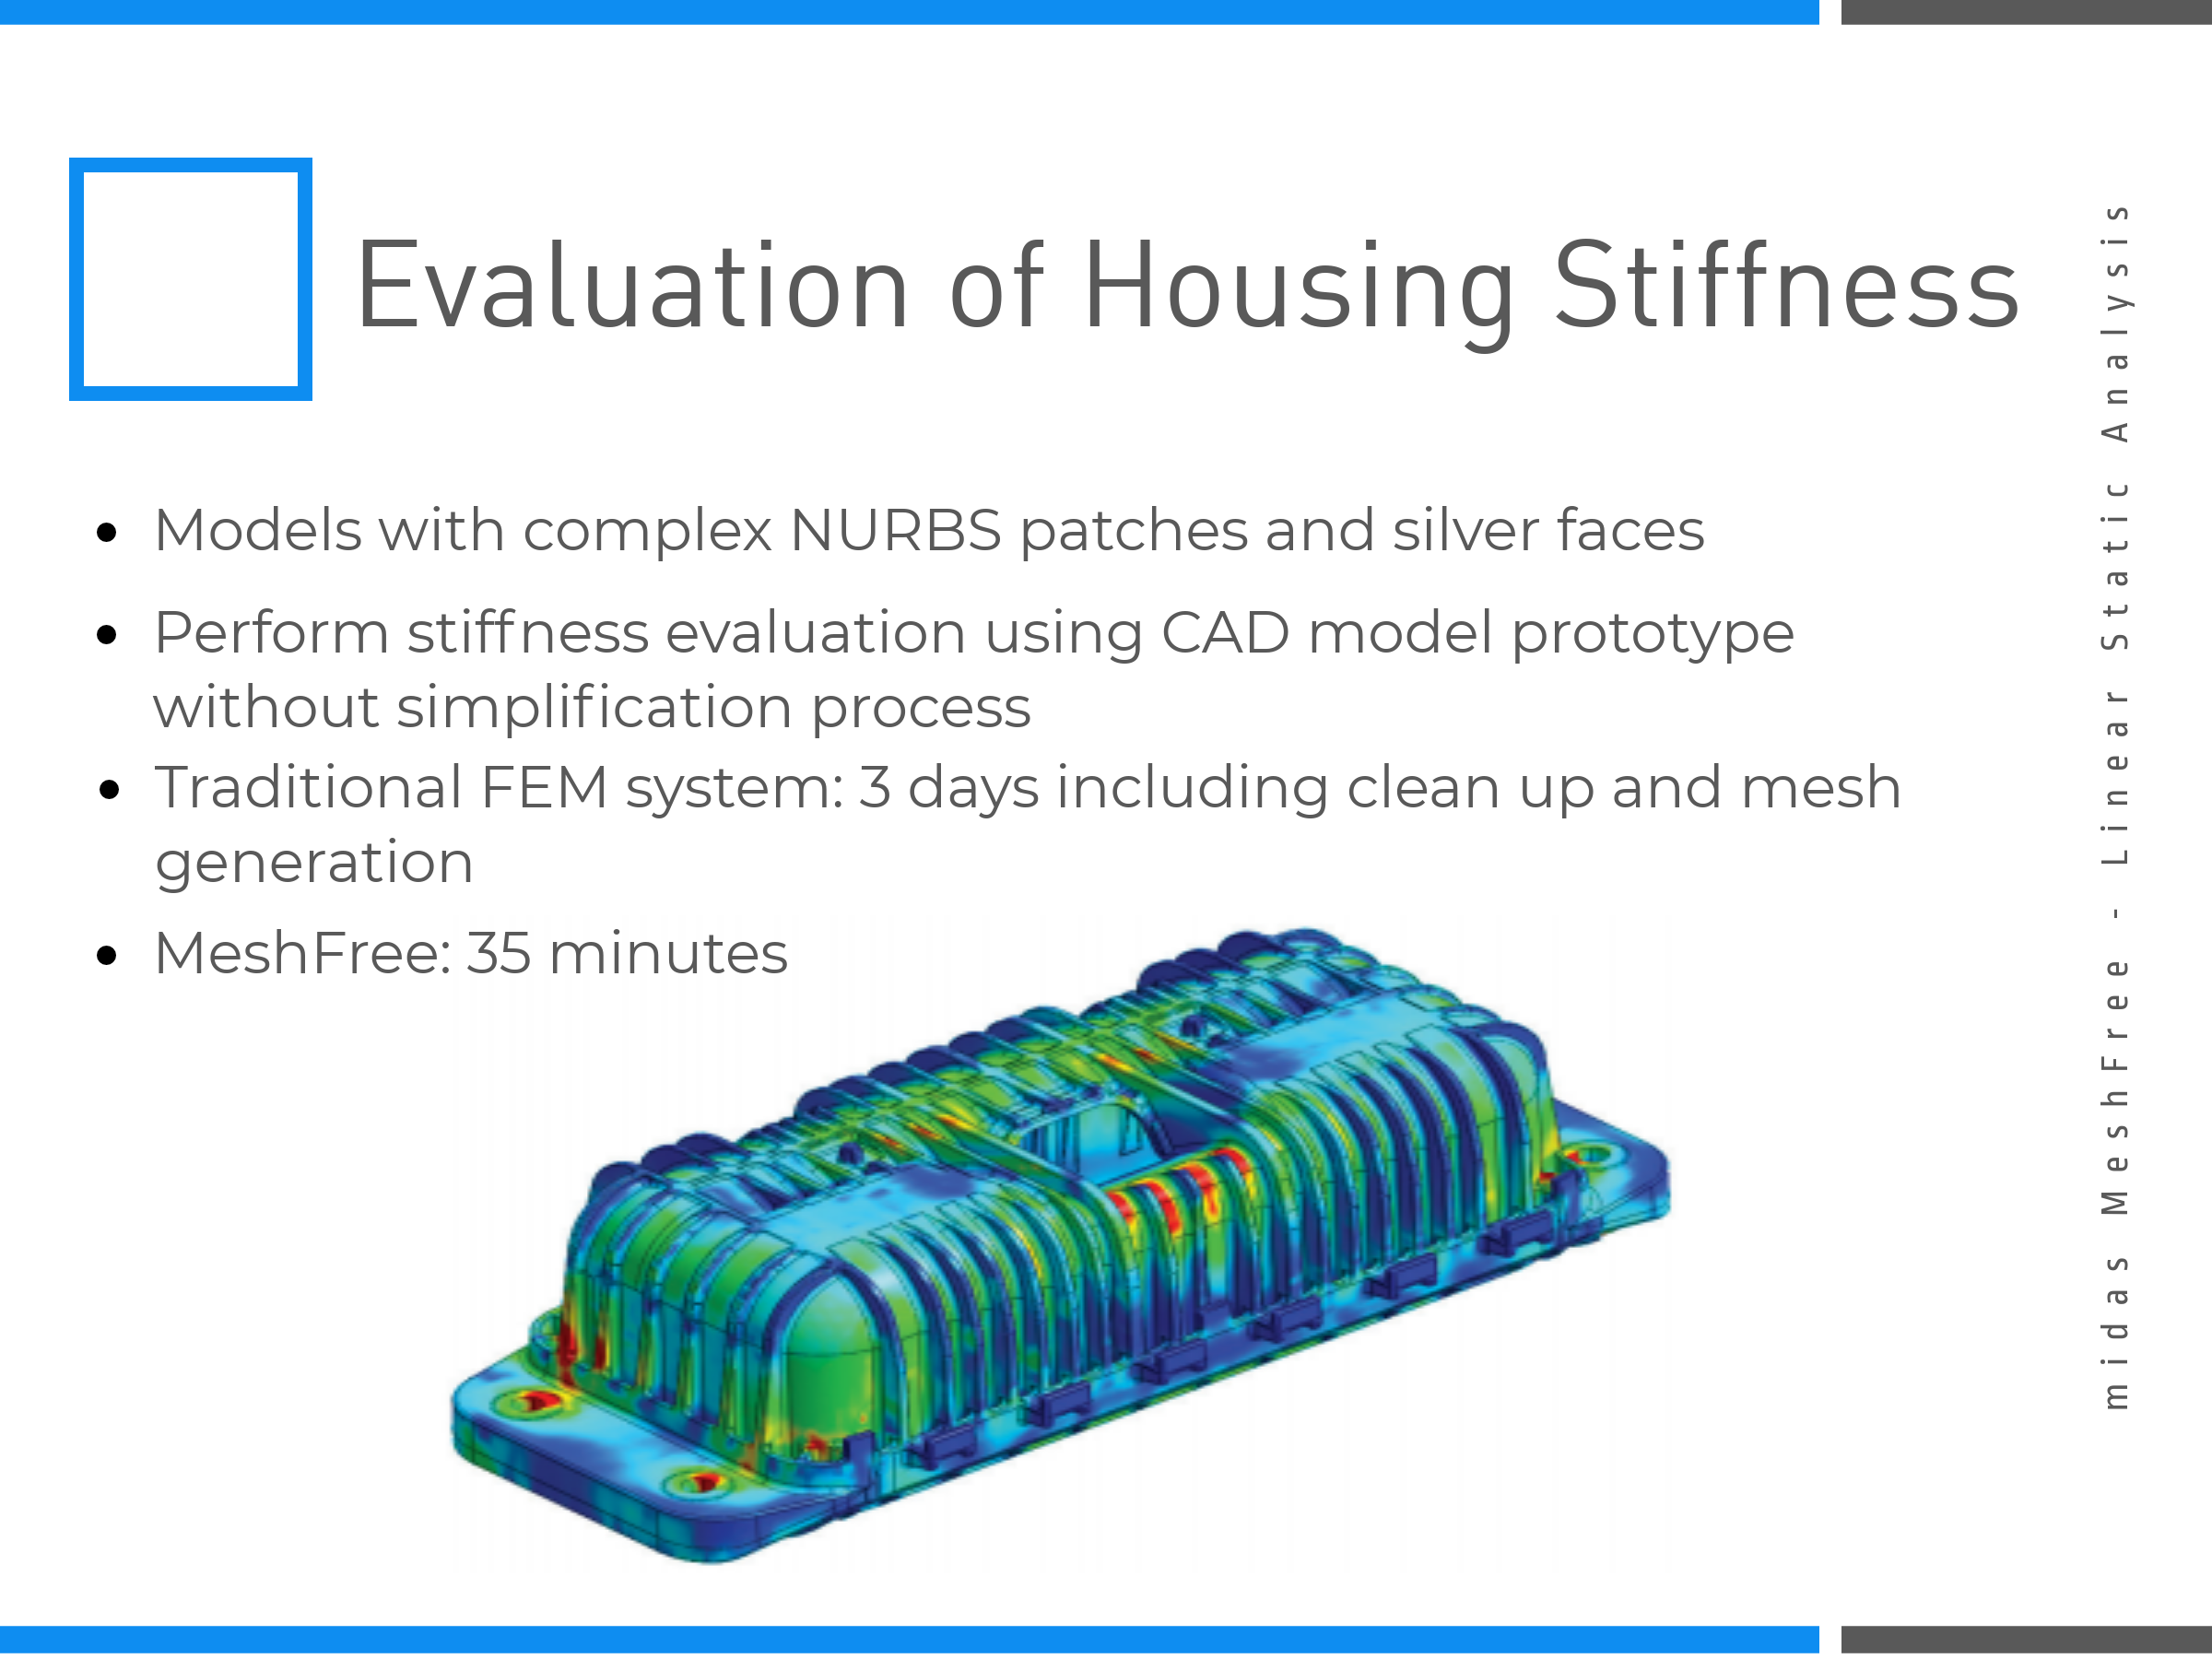 Evaluation of Housing Stiffness on MeshFree (Slide 7)